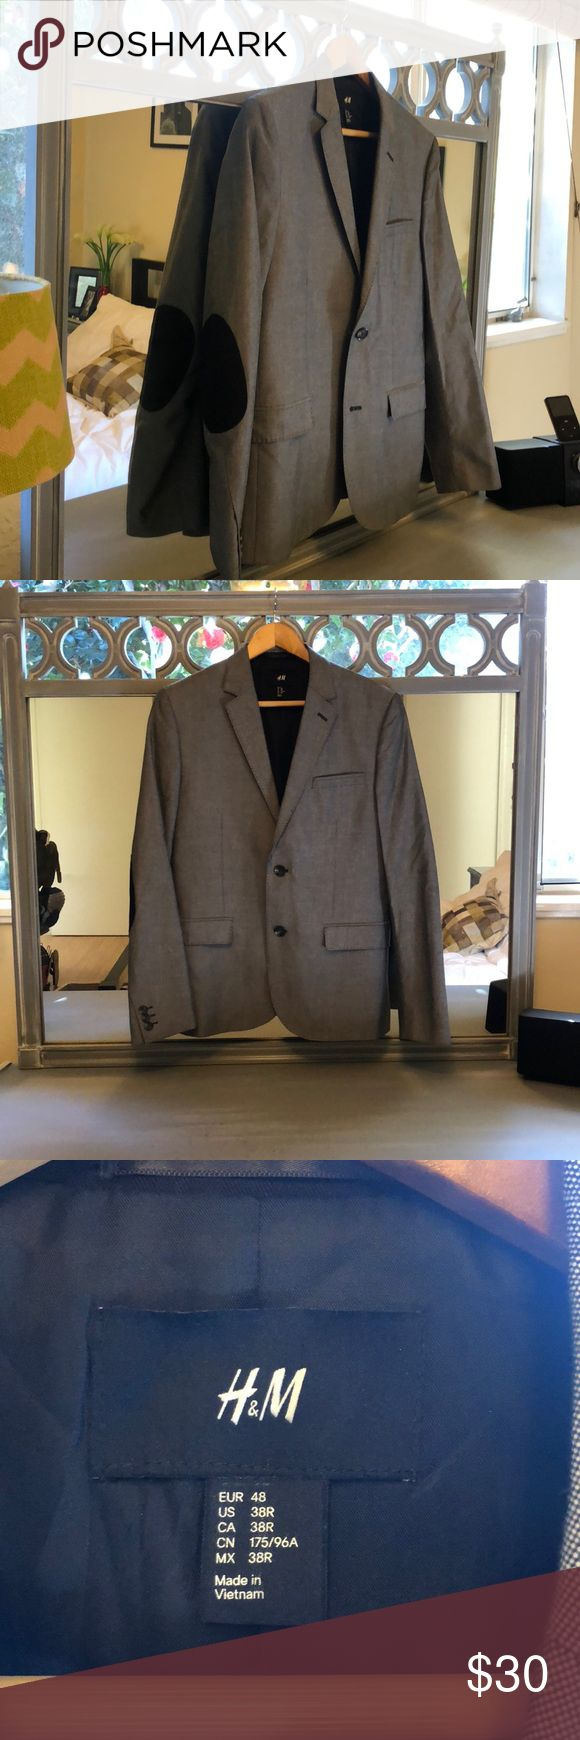 Men's H&M Grey Sport Coat Size 38R Only worn once or twice. H&M Grey Sport Coat with Black Patch Elbows. Size US 38R. H&M Suits & Blazers Sport Coats & Blazers